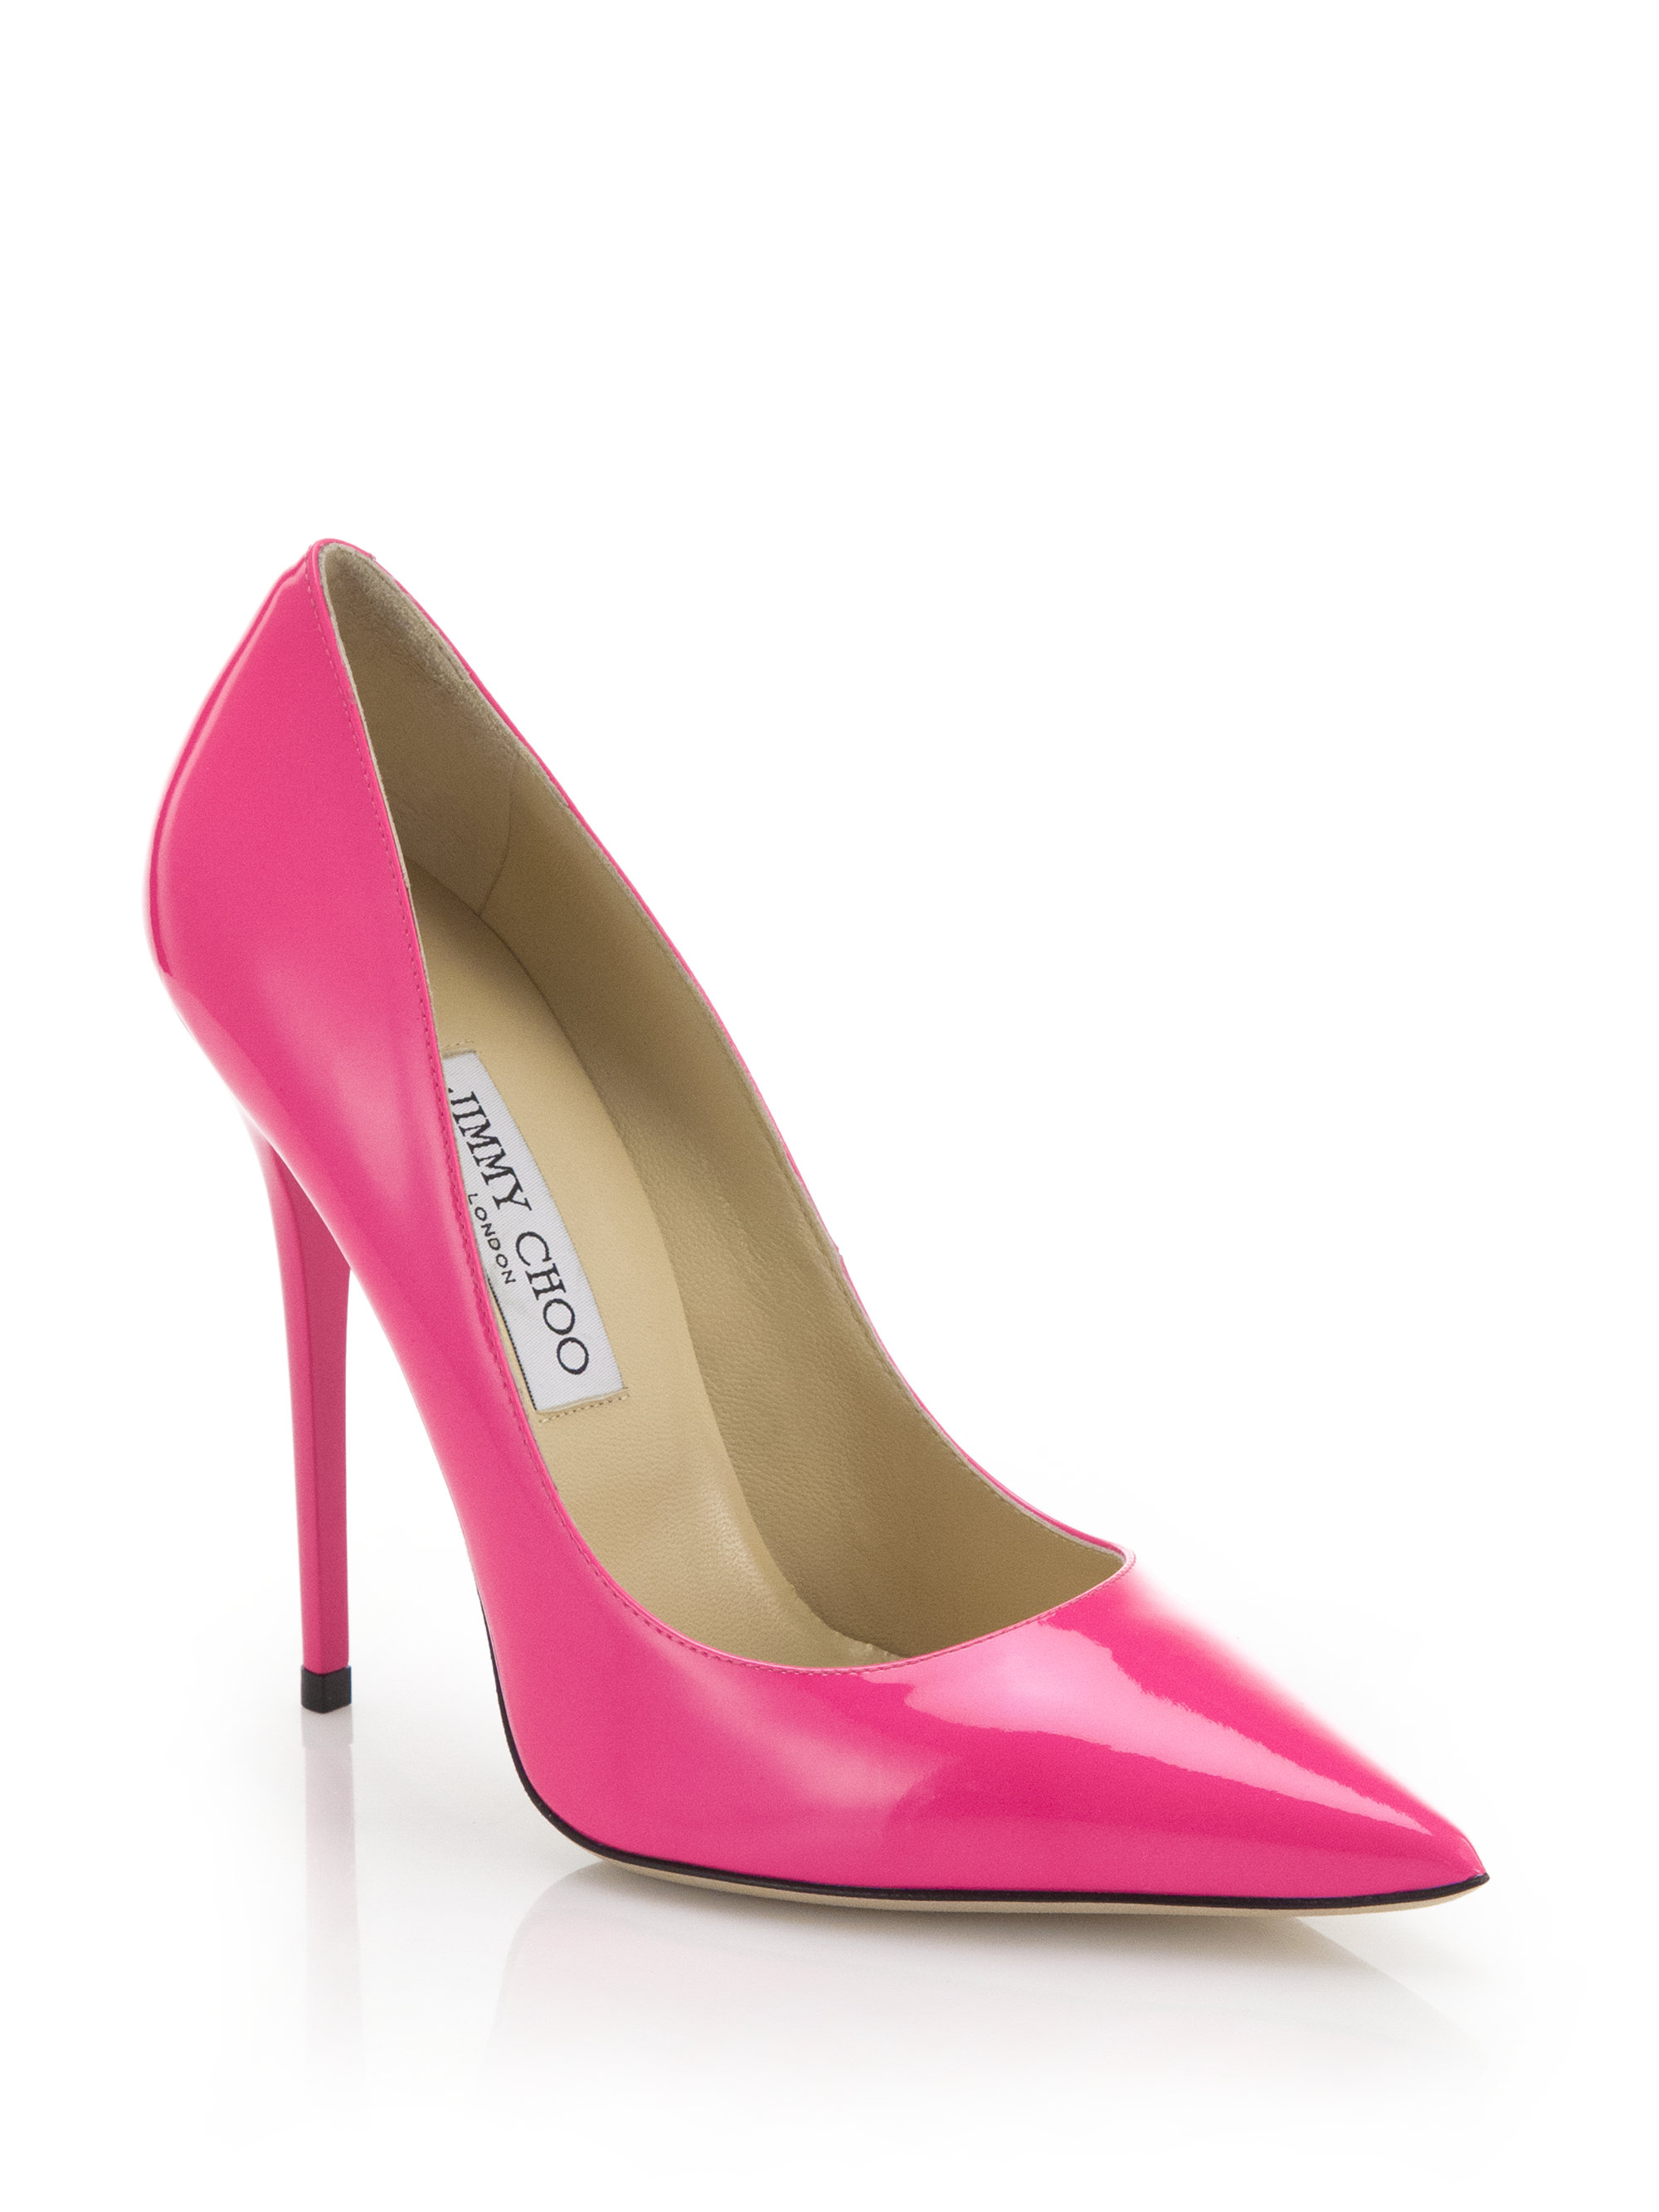 70163fcc6118 ... clearance lyst jimmy choo anouk patent leather pumps in pink 9f63e 49b10